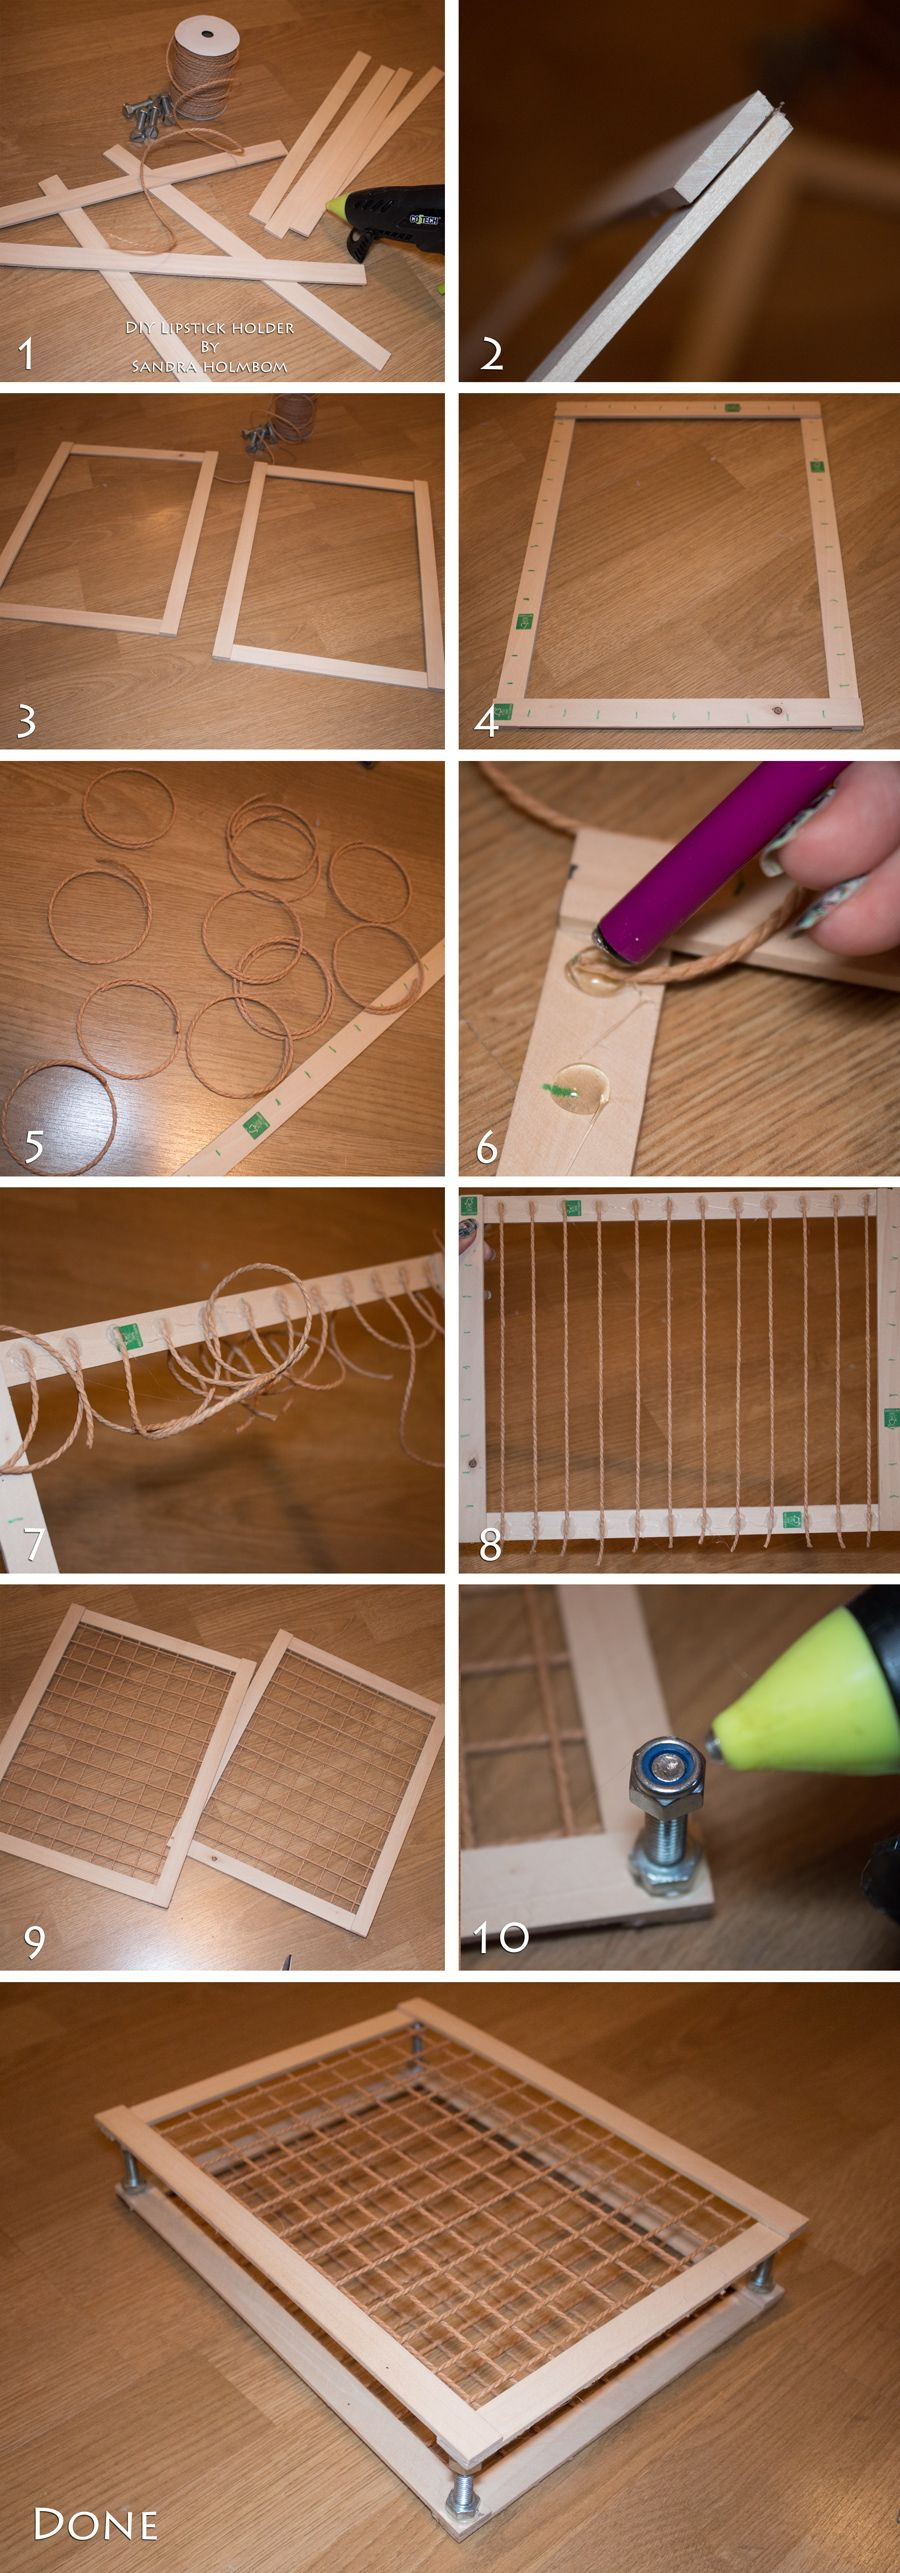 Tutorial  DIY Lipstick holder (Sandra Holmbom)